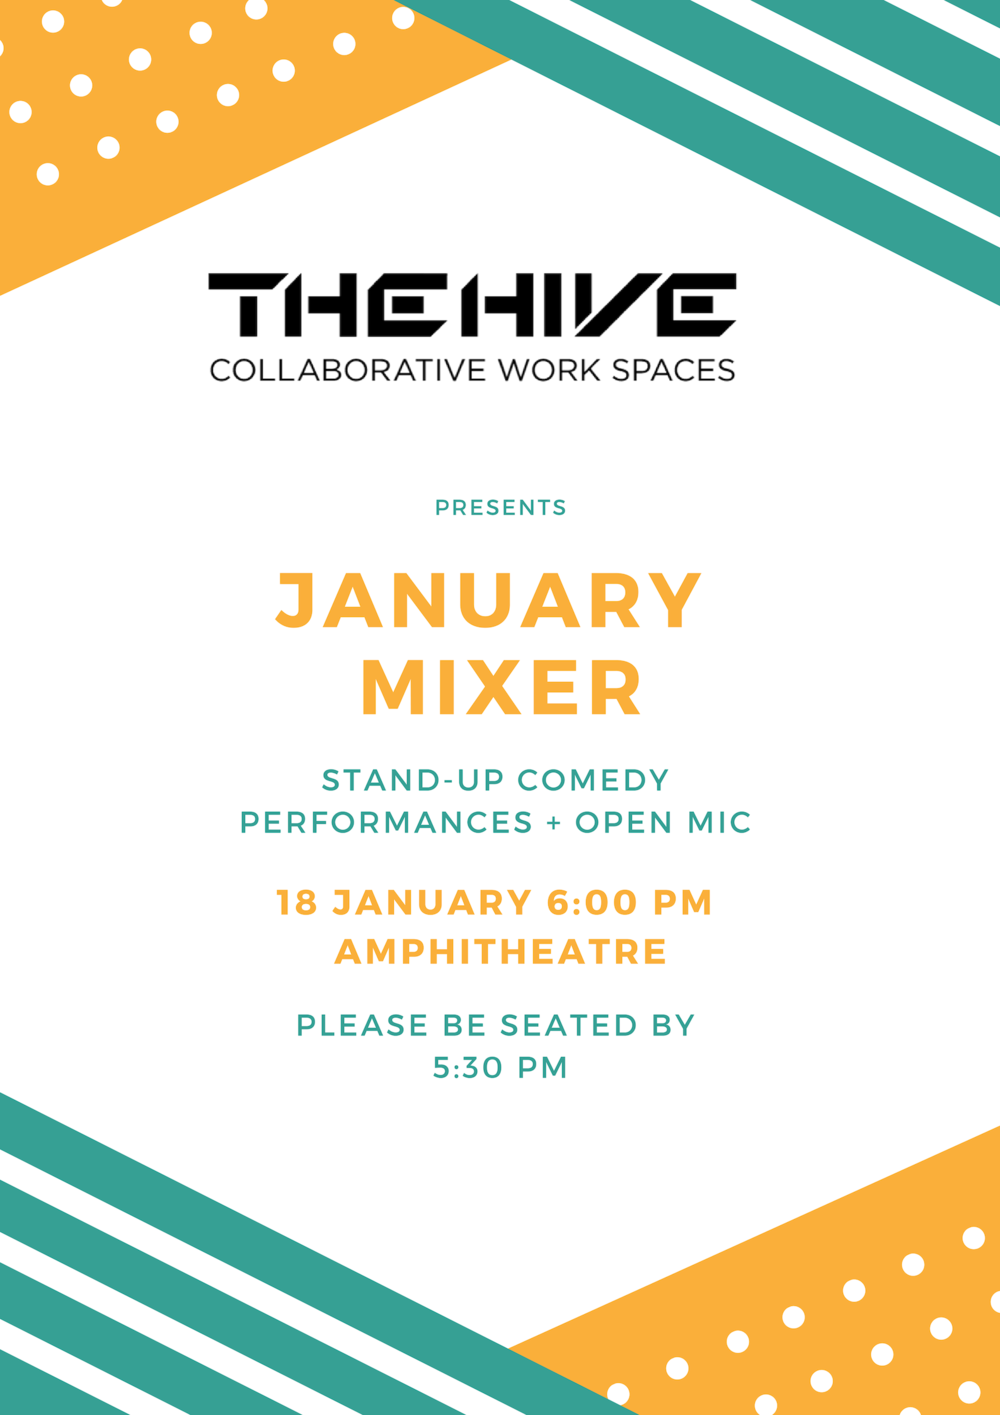 THE HIVE january mixer_Insta.png